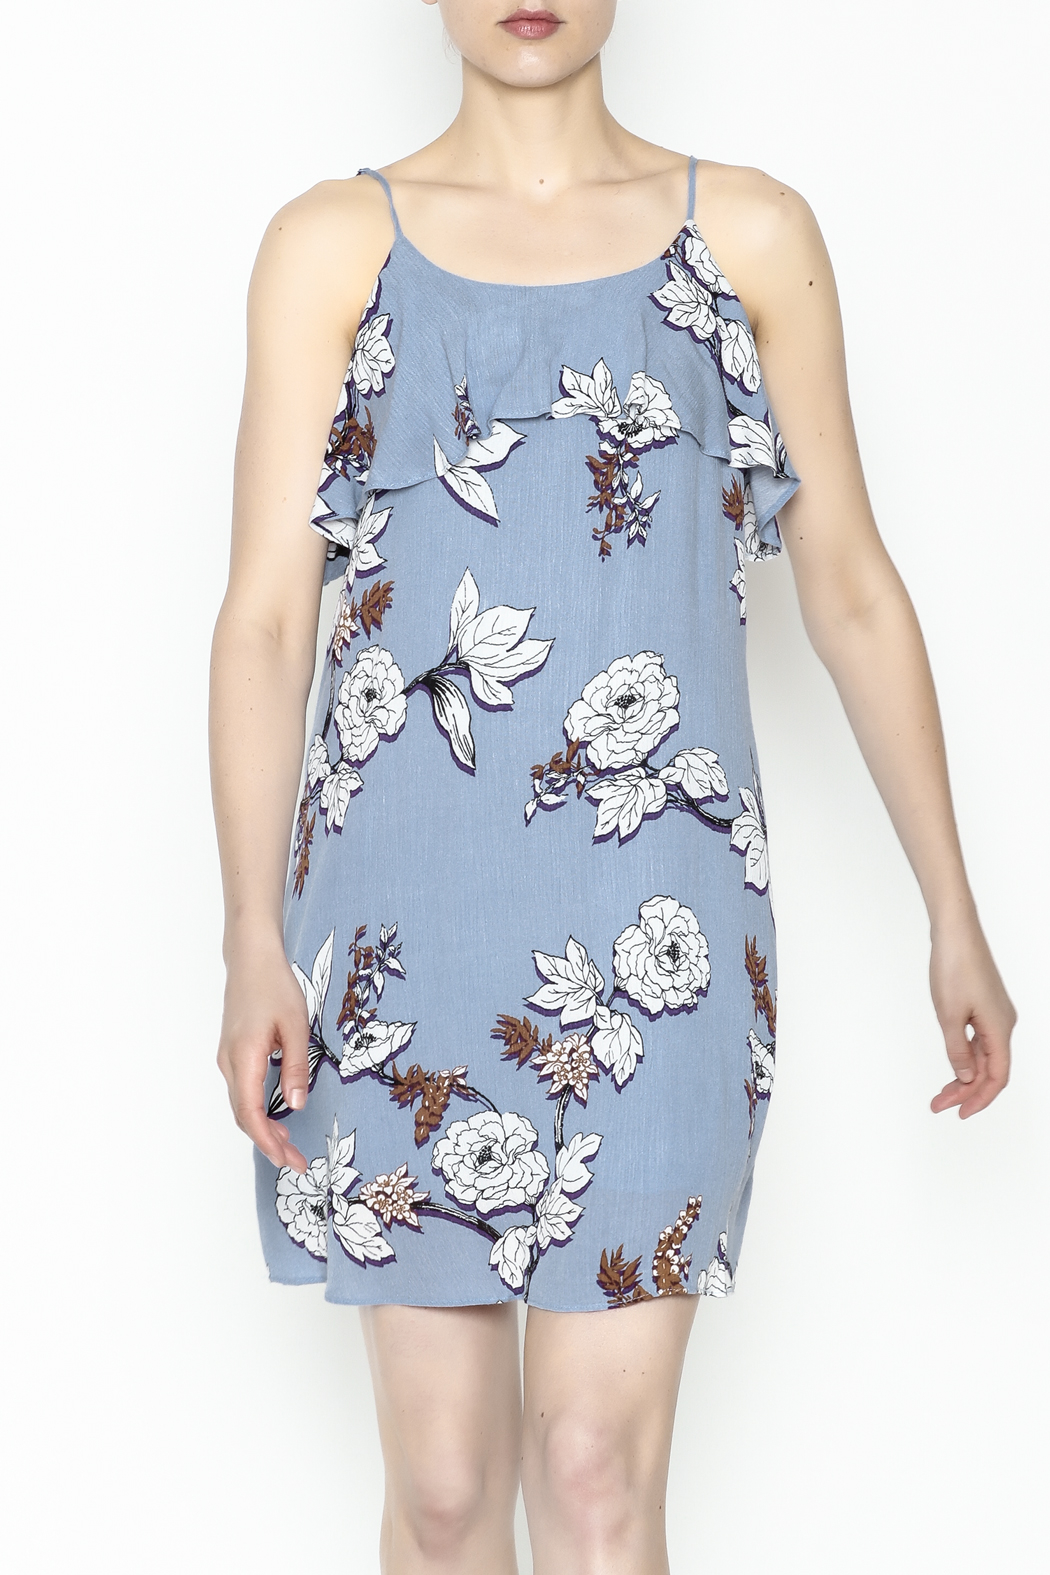 Everly Floral Cami Dress - Main Image